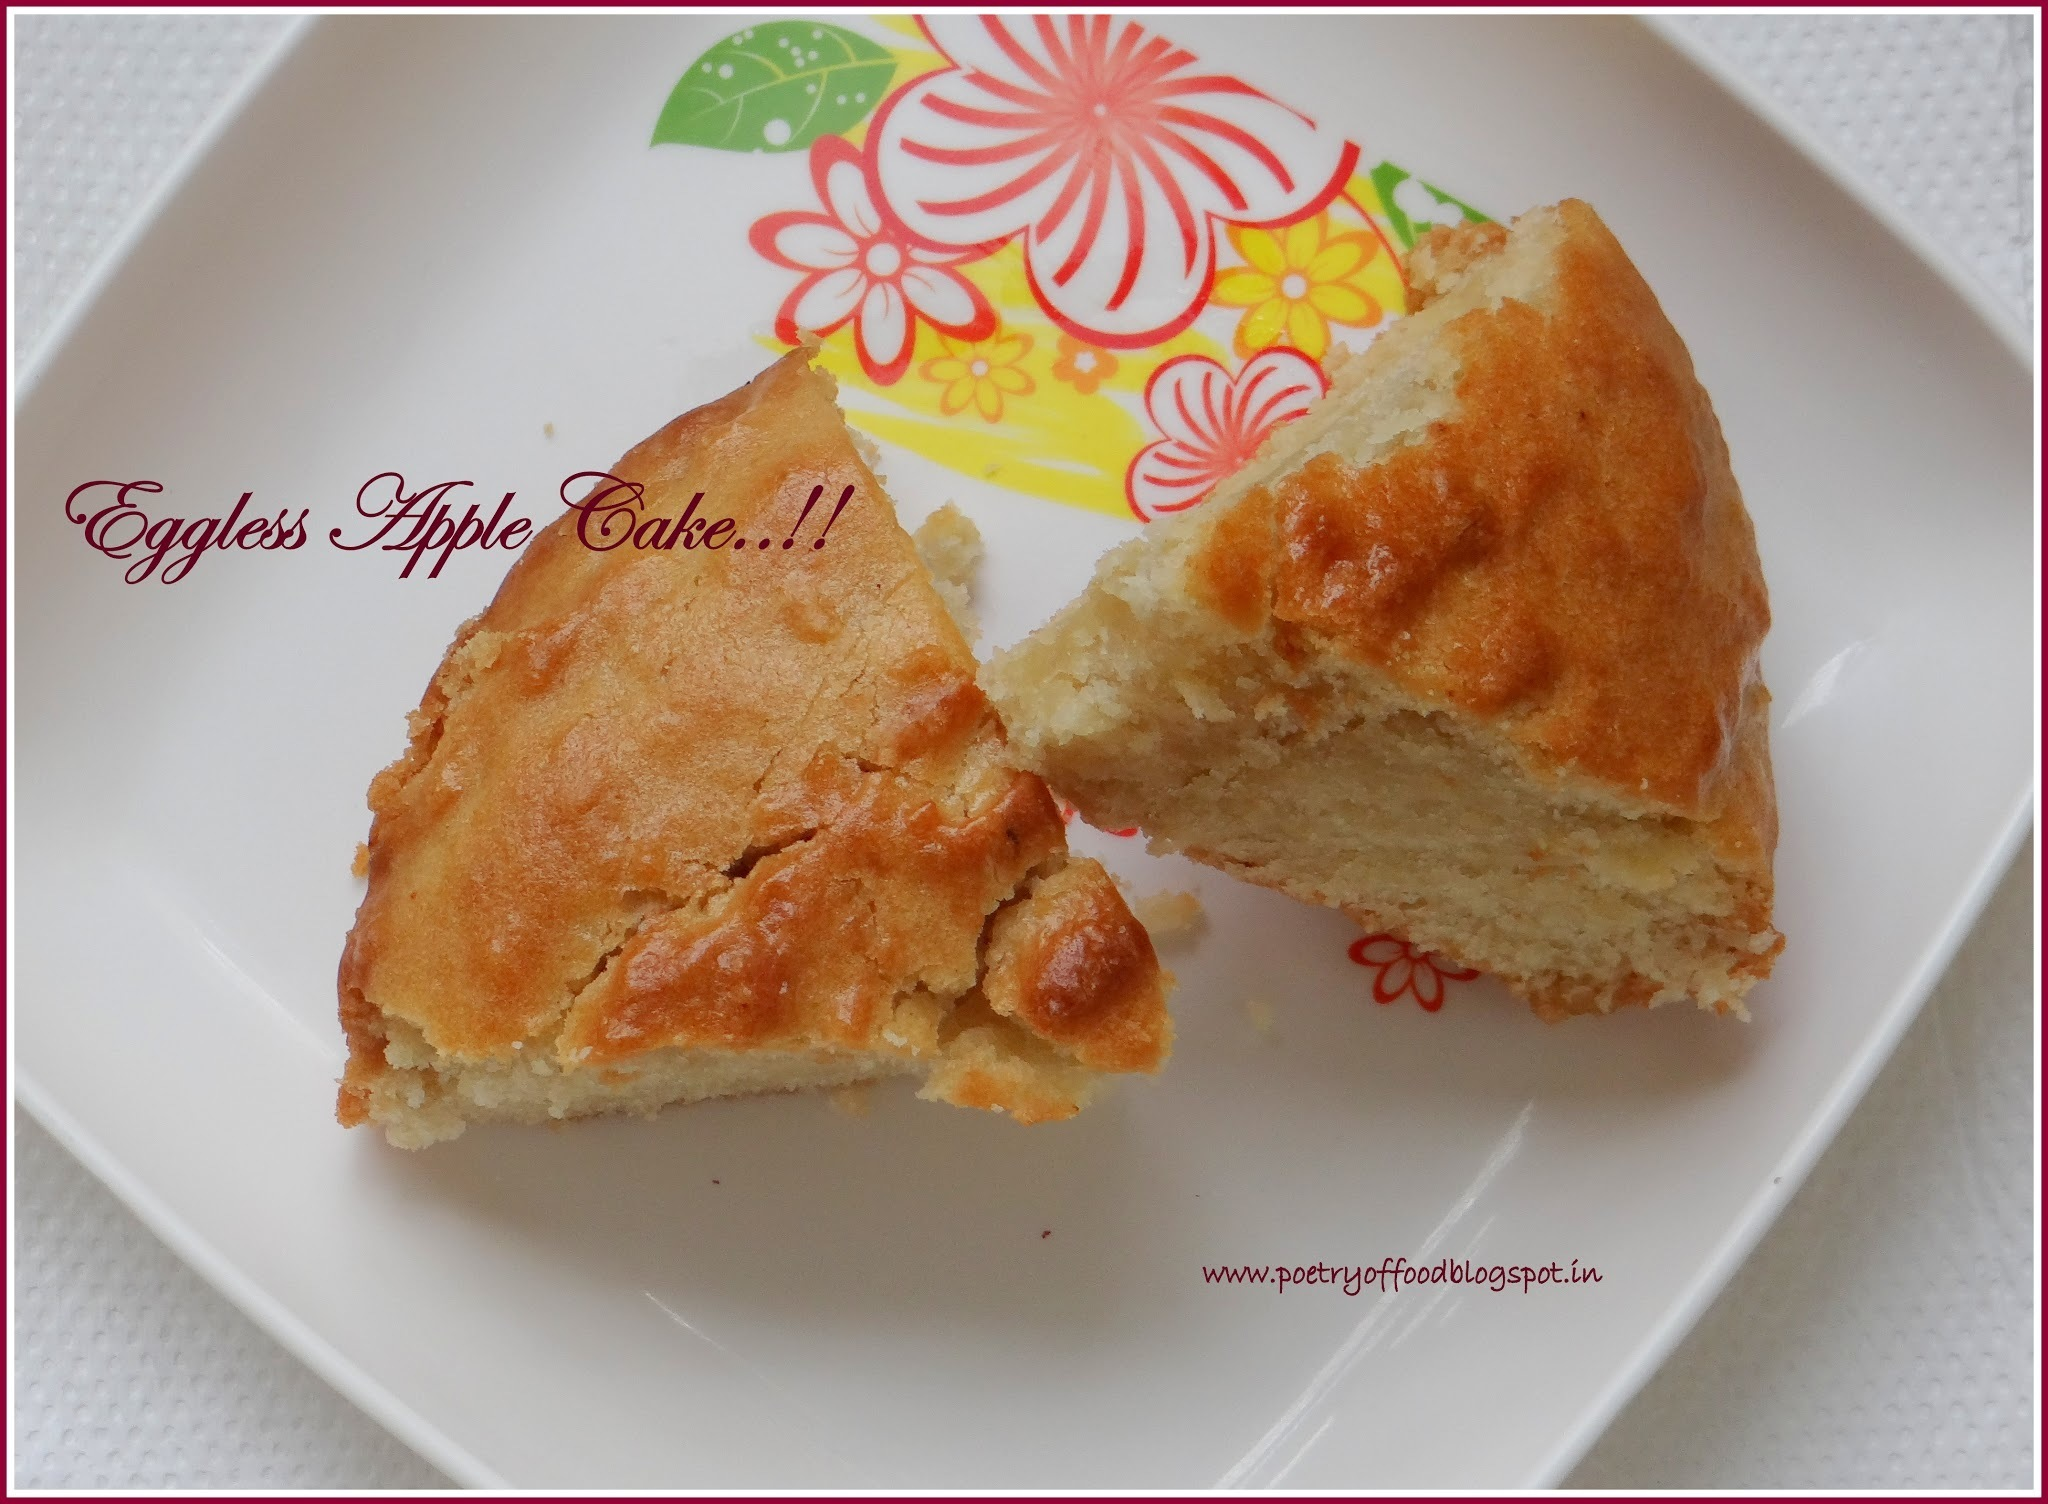 Eggless Apple Cake..!!!